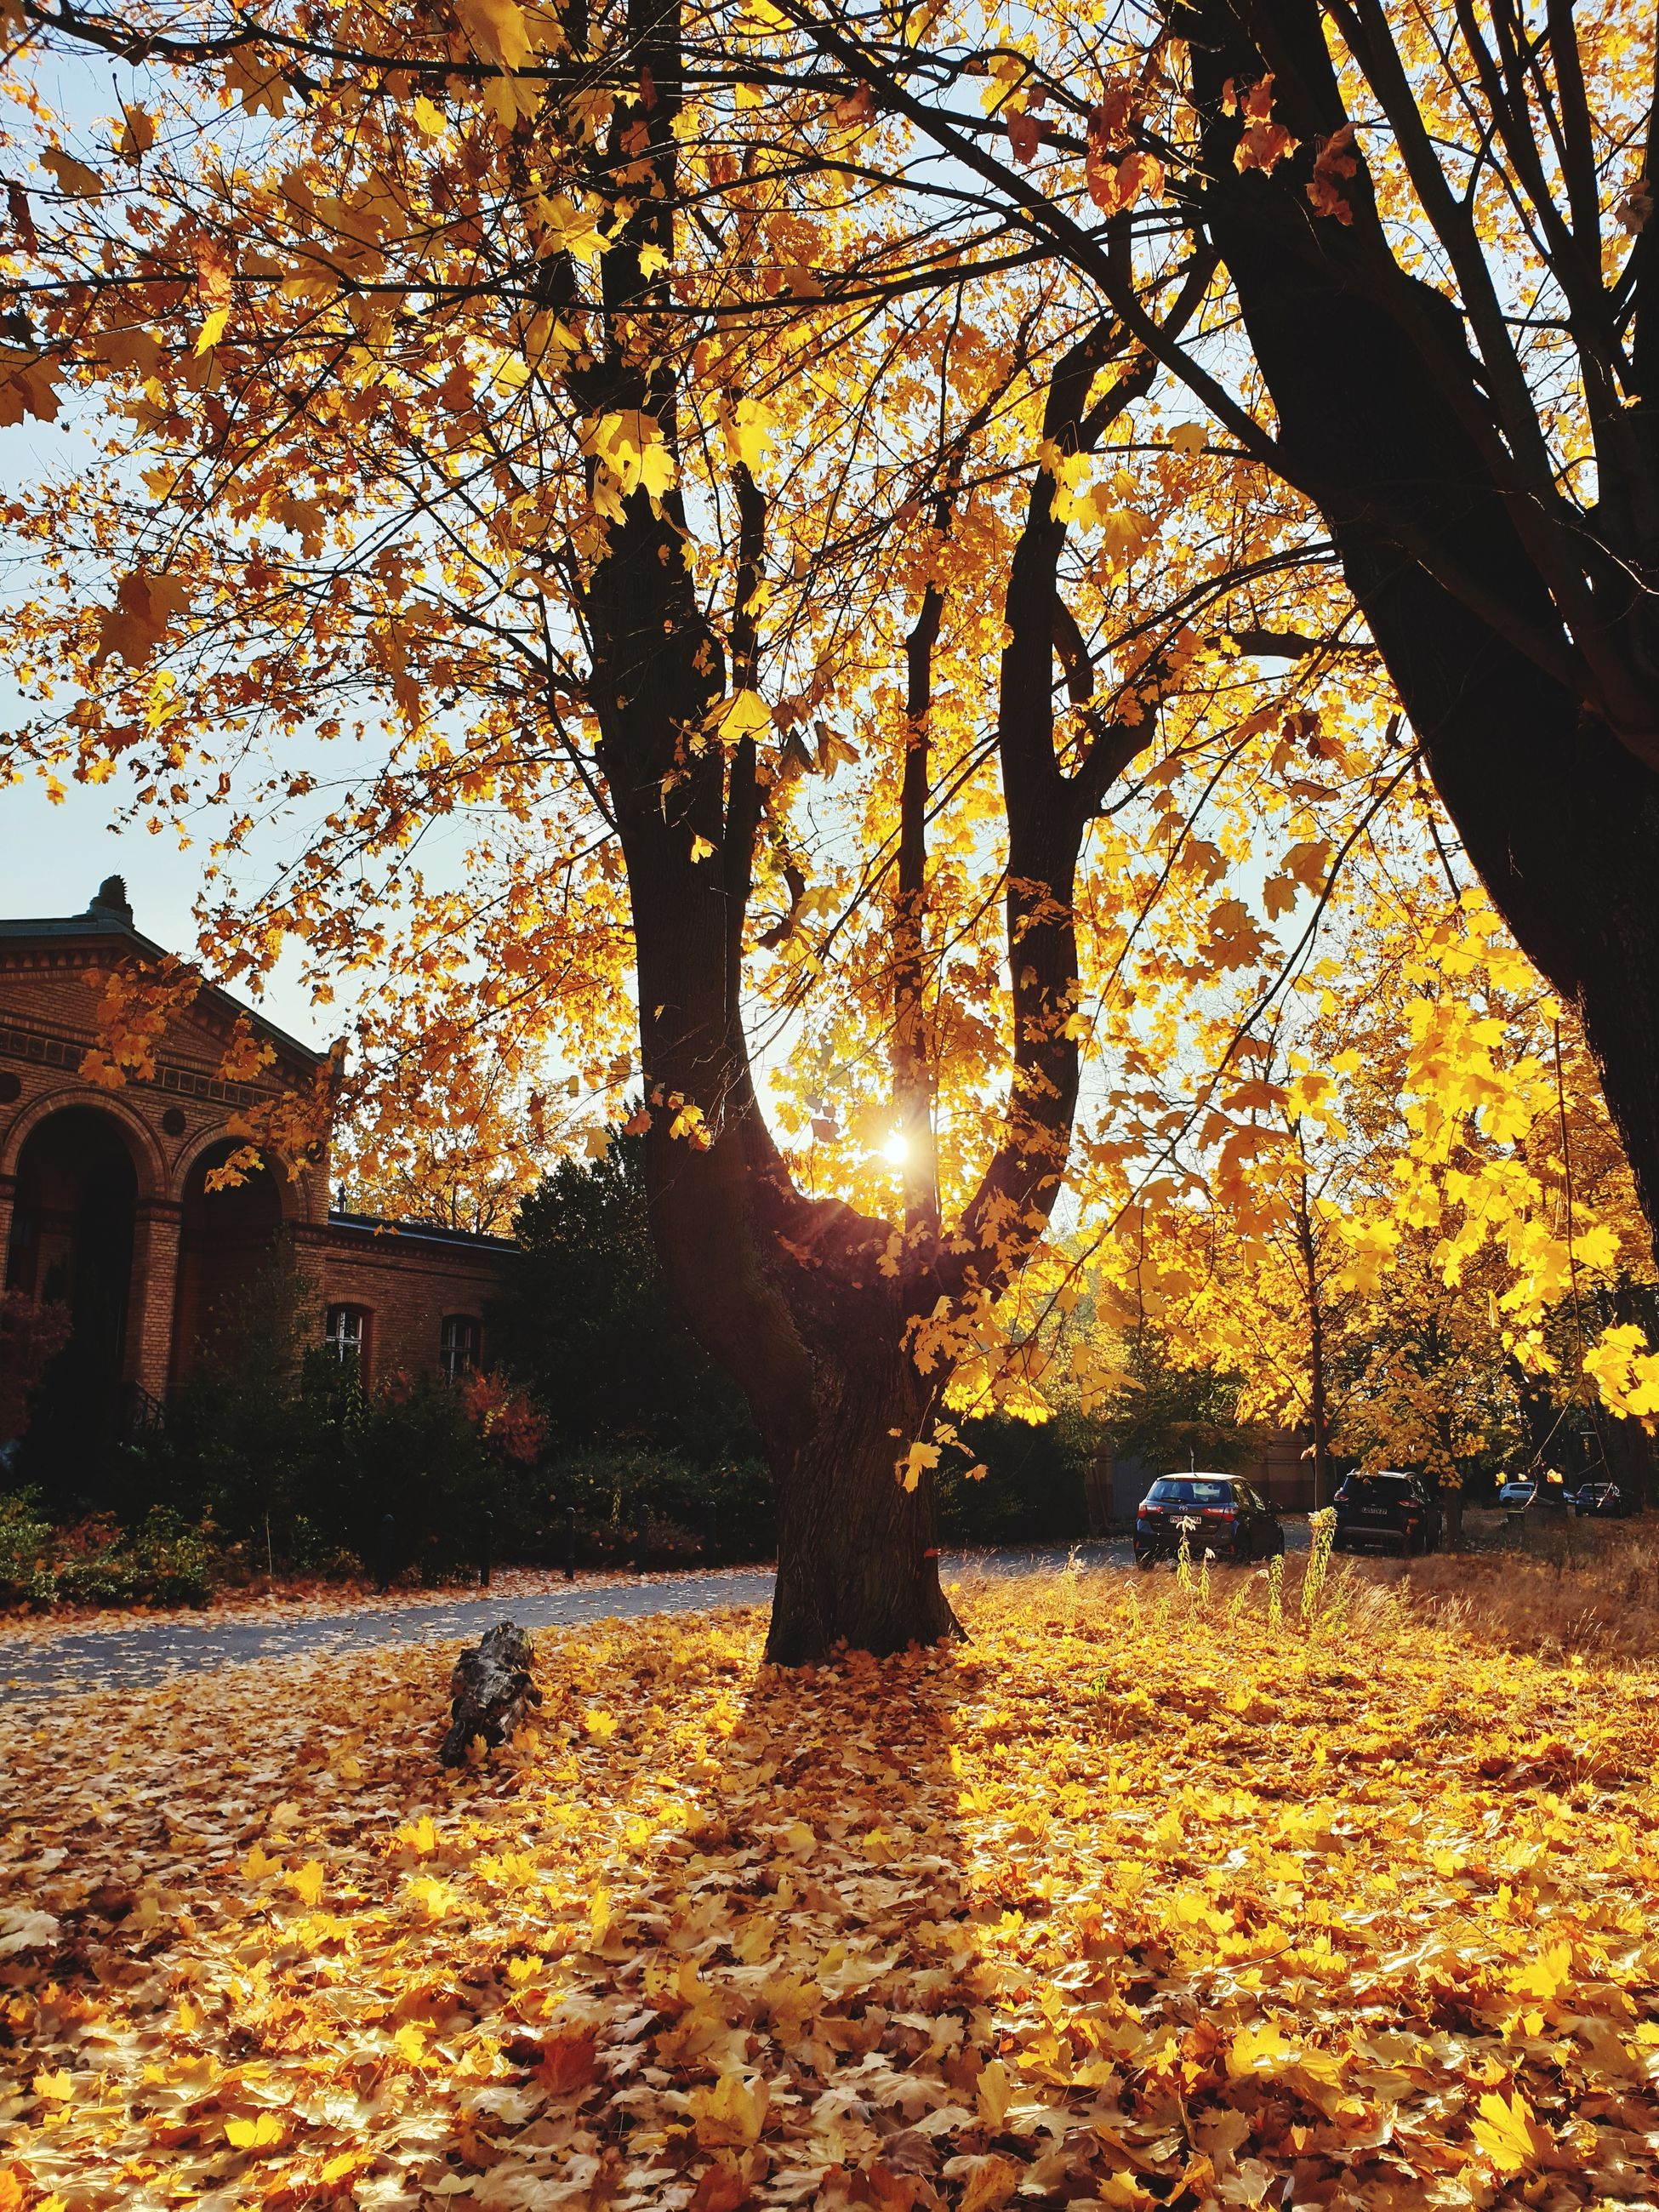 tree, autumn, change, plant, architecture, building exterior, plant part, leaf, nature, built structure, orange color, building, sky, outdoors, no people, sunlight, beauty in nature, branch, growth, day, leaves, fall, autumn collection